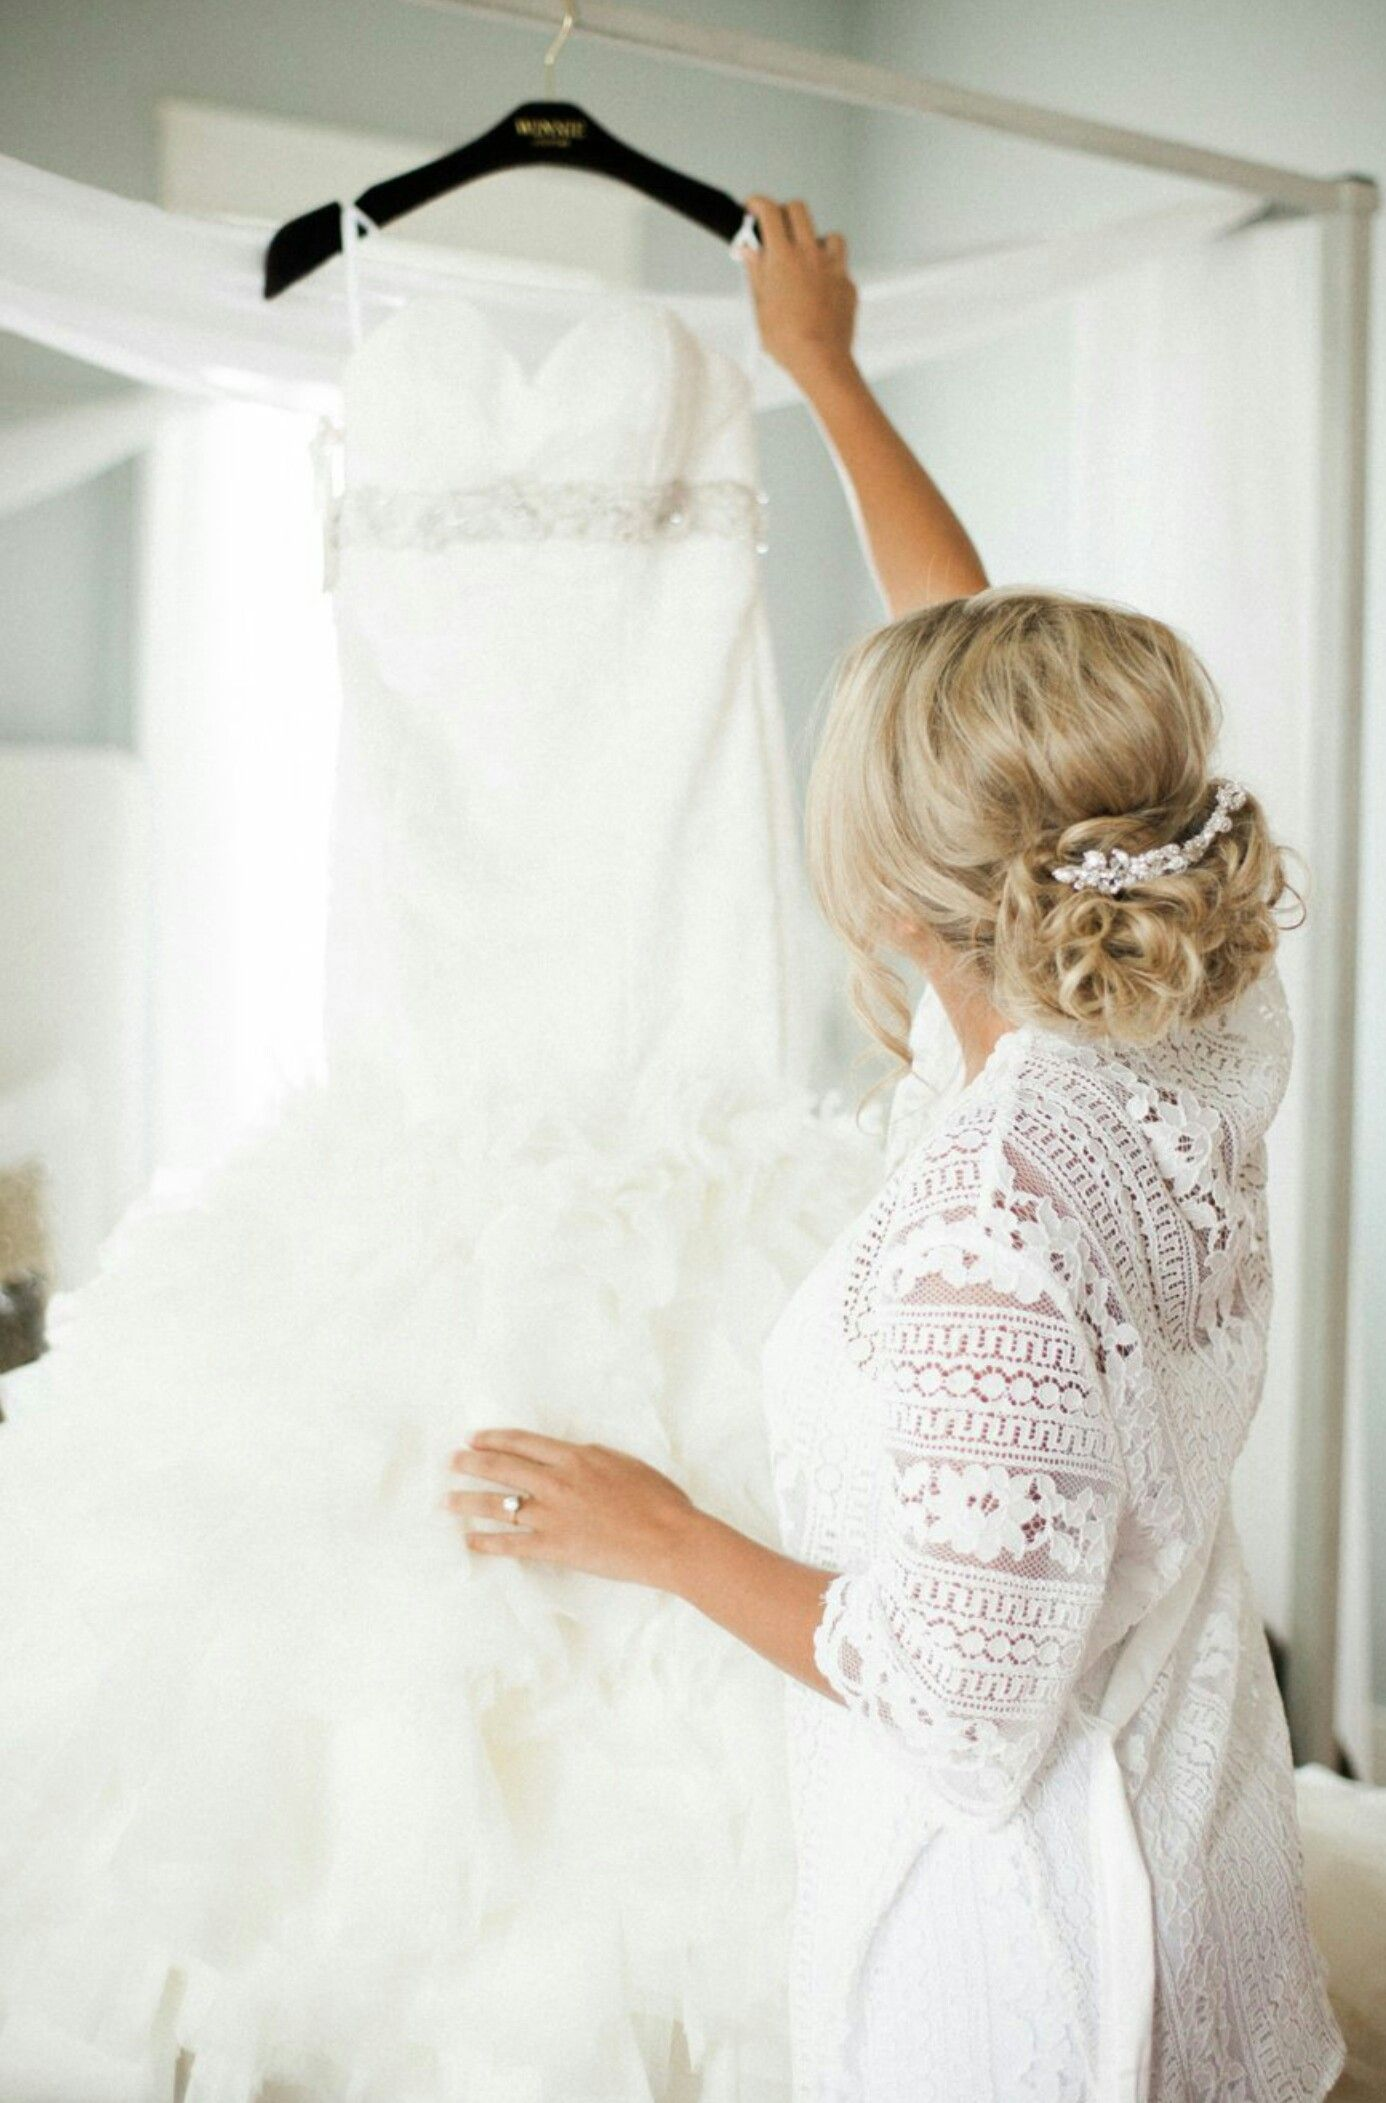 Memory captured of bride holding her dress. I want this